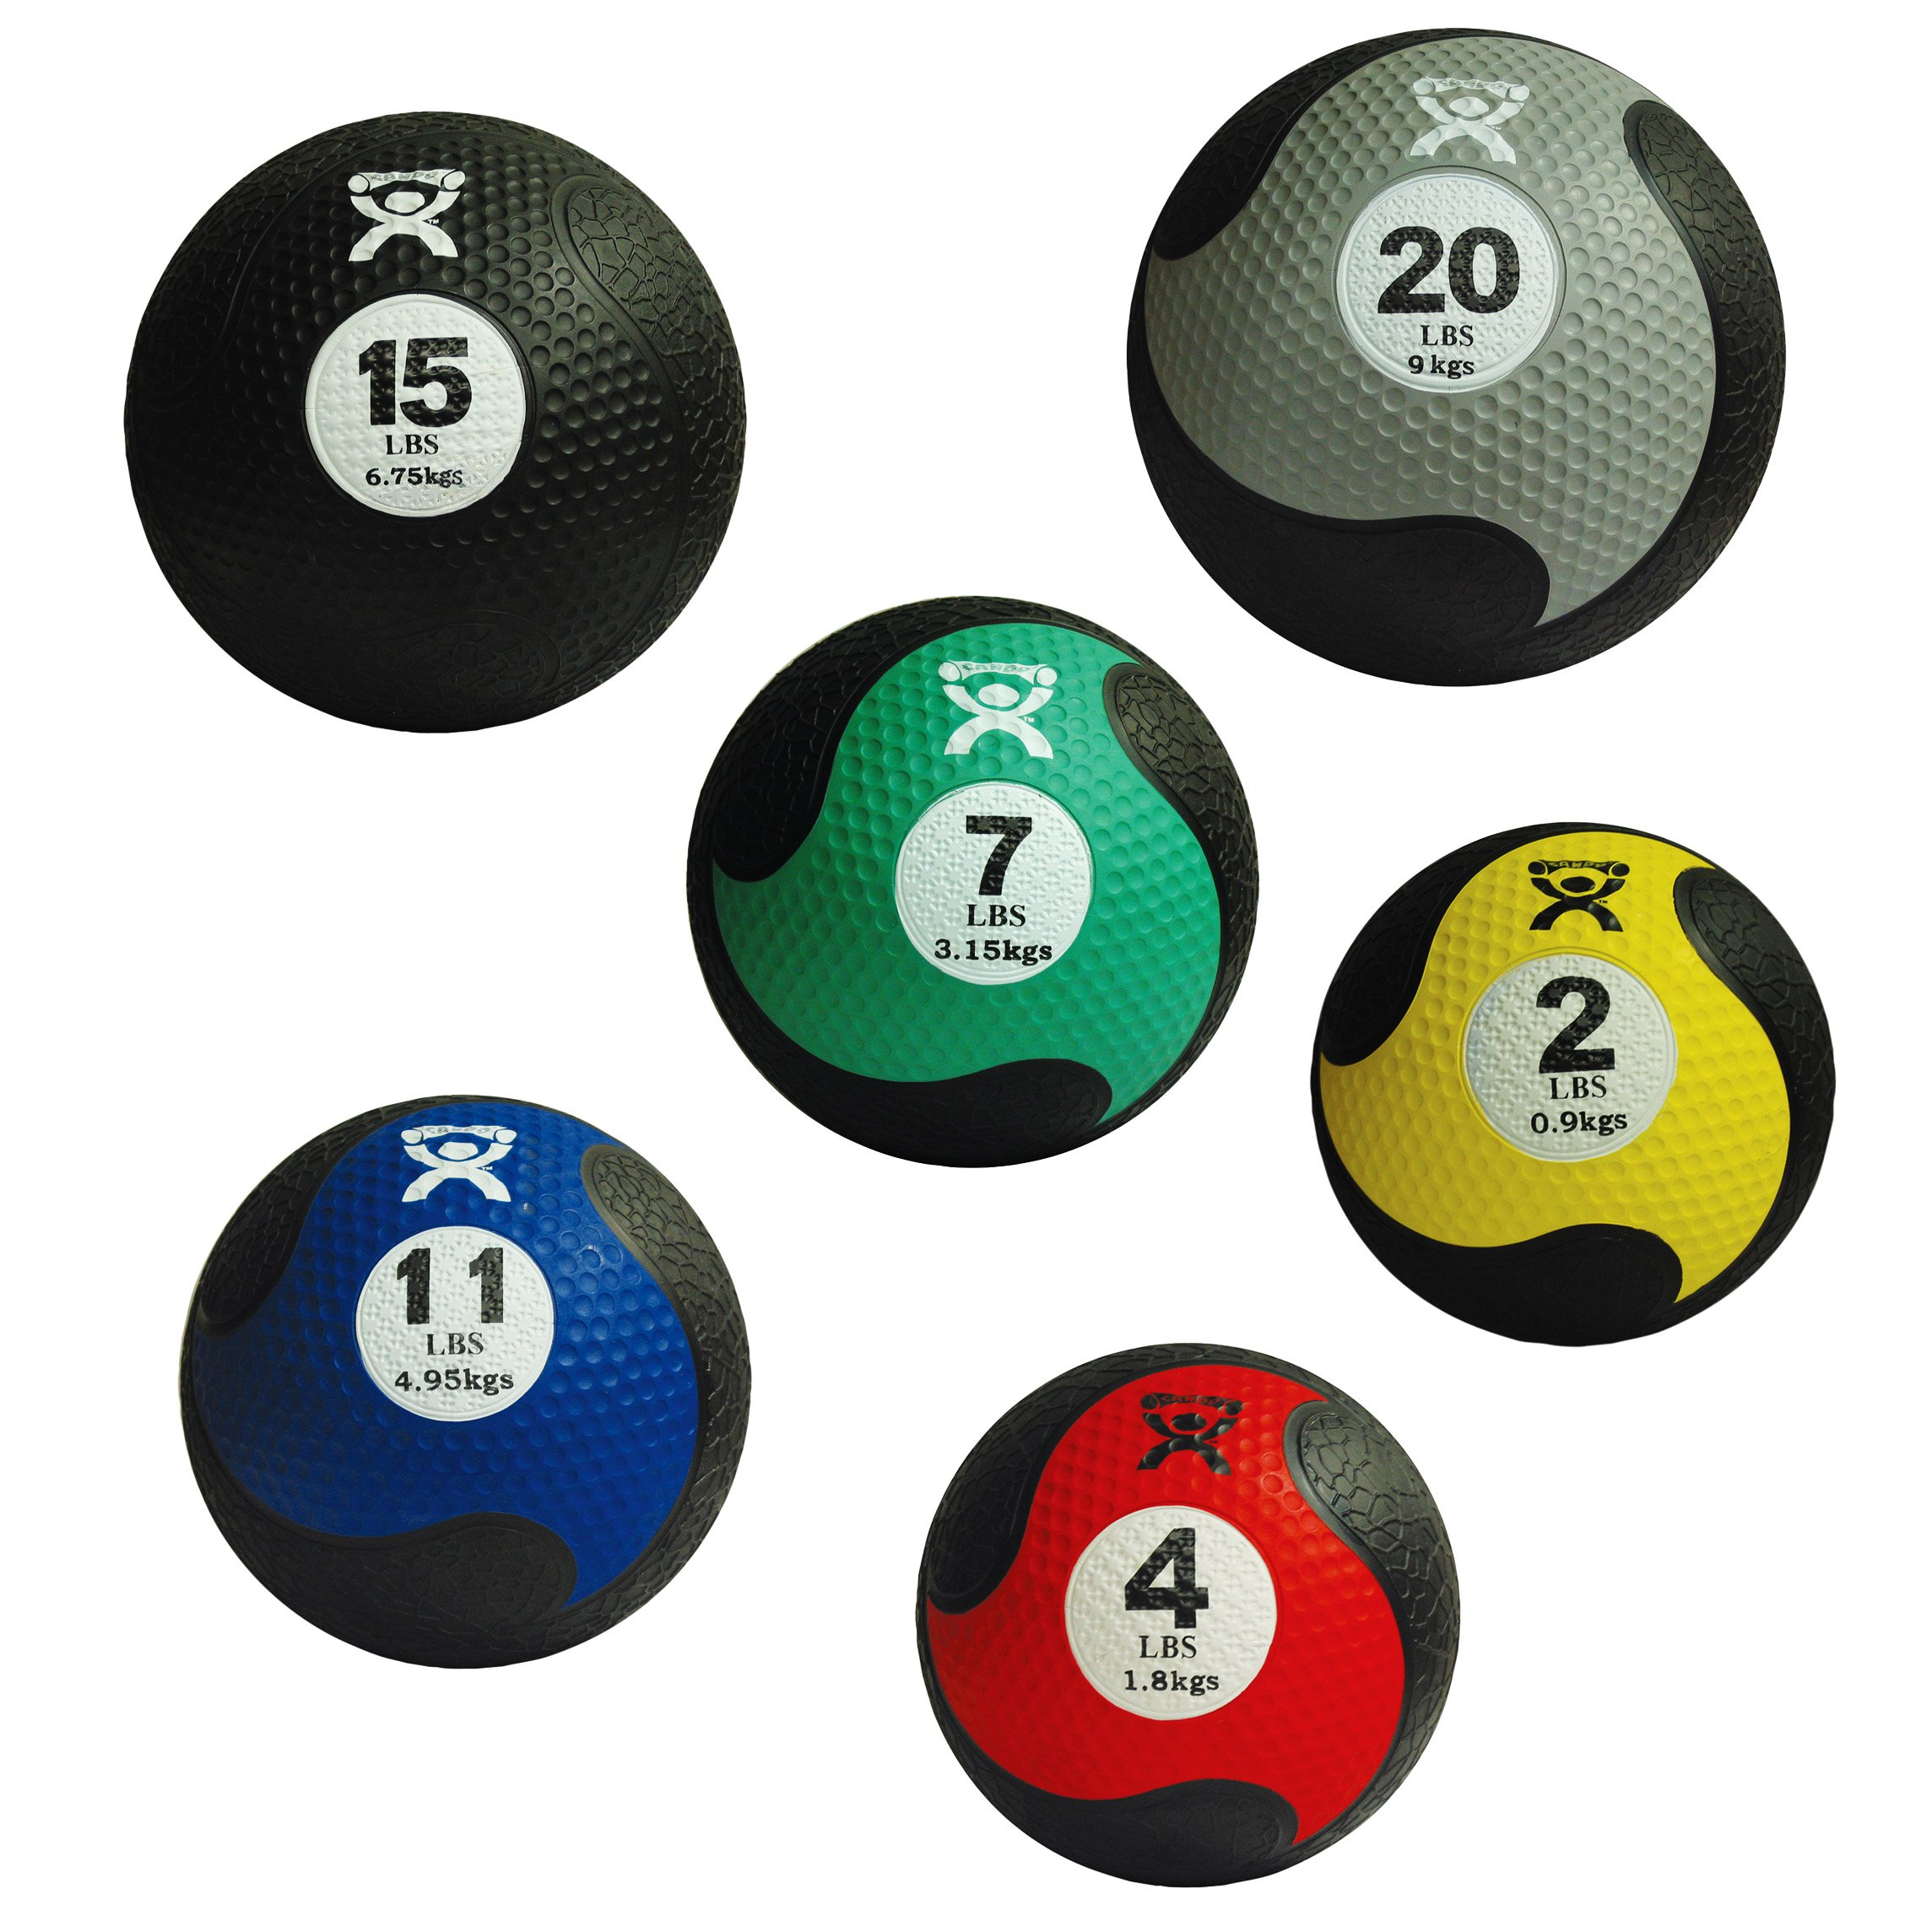 Cando Firm Fitness Medicine Balls - 6-Piece Bundle - 1 Each: 2, 4, 7, 11, 15, 20 LB